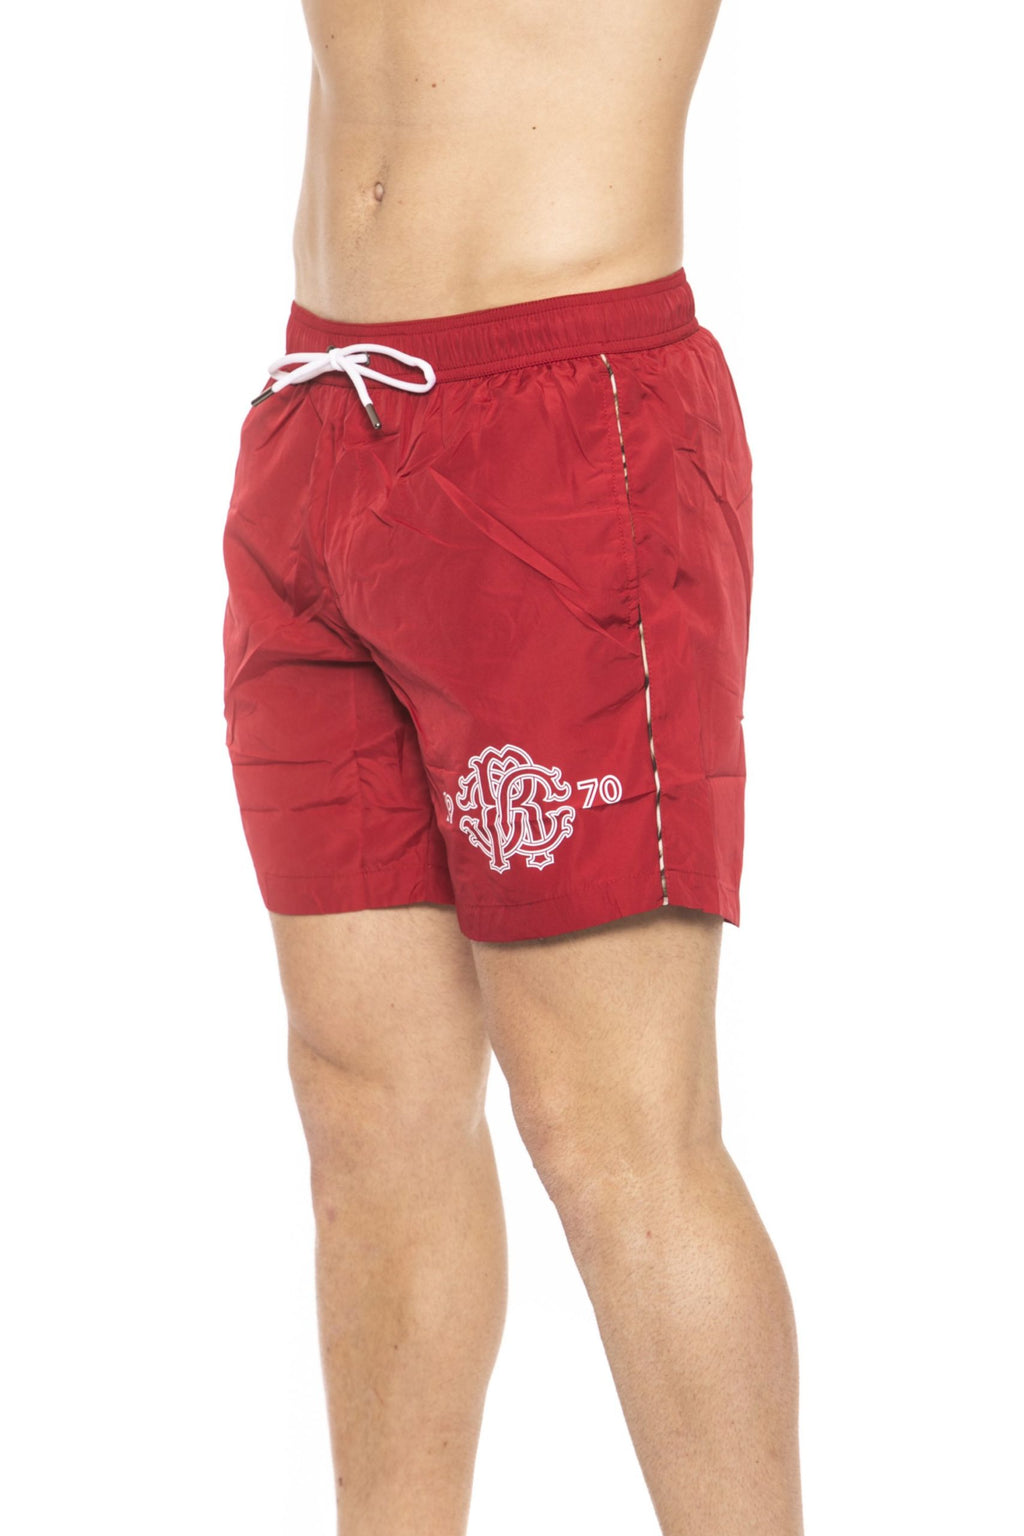 Red Beachwear Boxer With Pockets. Front Logo Print. Internal Net. Back Pocket. Spotted Edges.